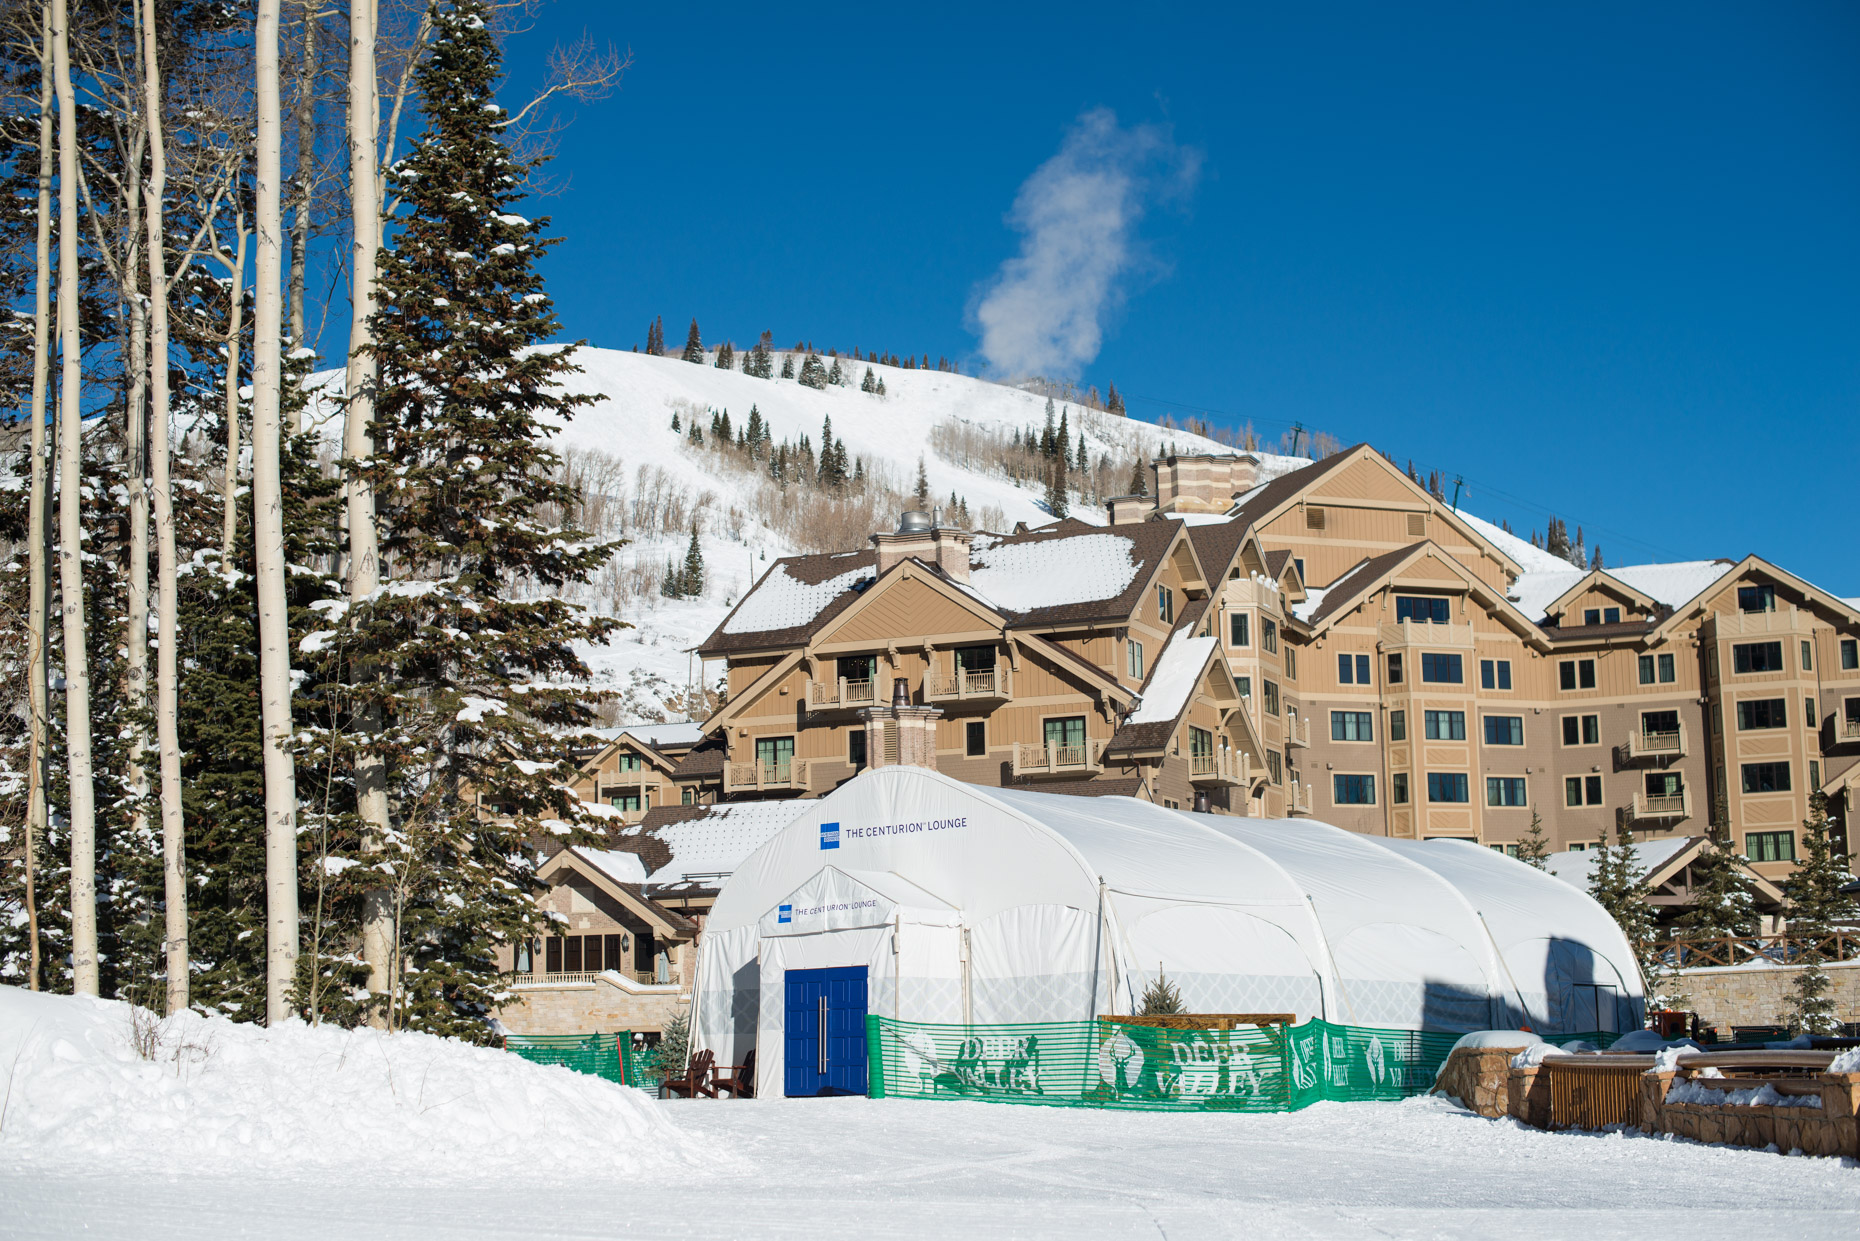 2015-03-06-AMEX-Deer-Valley-0022